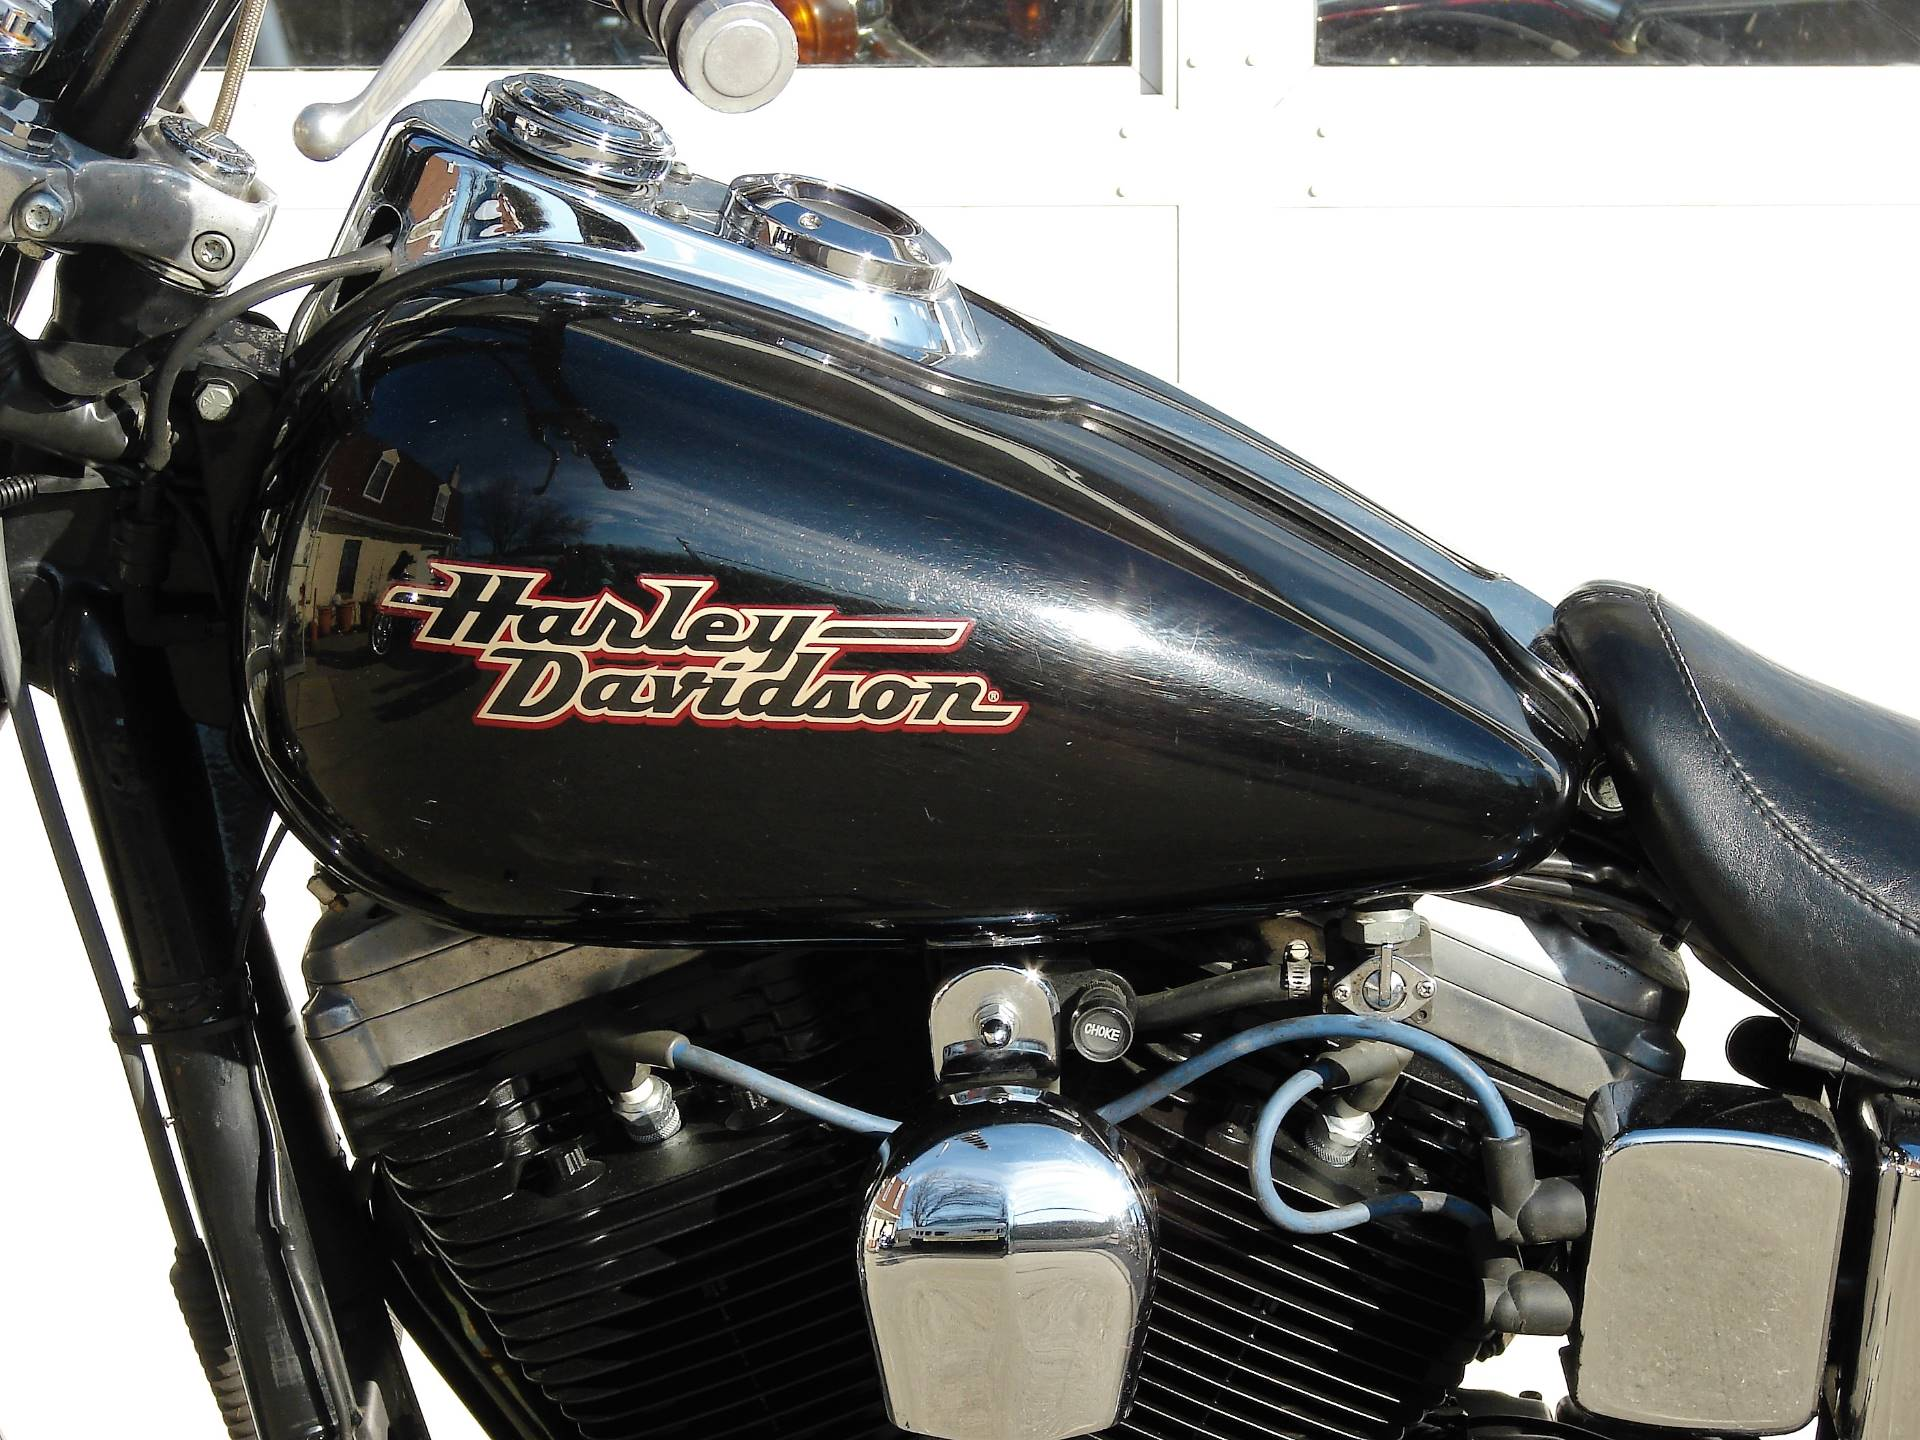 "1996 Harley-Davidson Dyna Glide ""Low Rider""   (Black) in Williamstown, New Jersey - Photo 7"